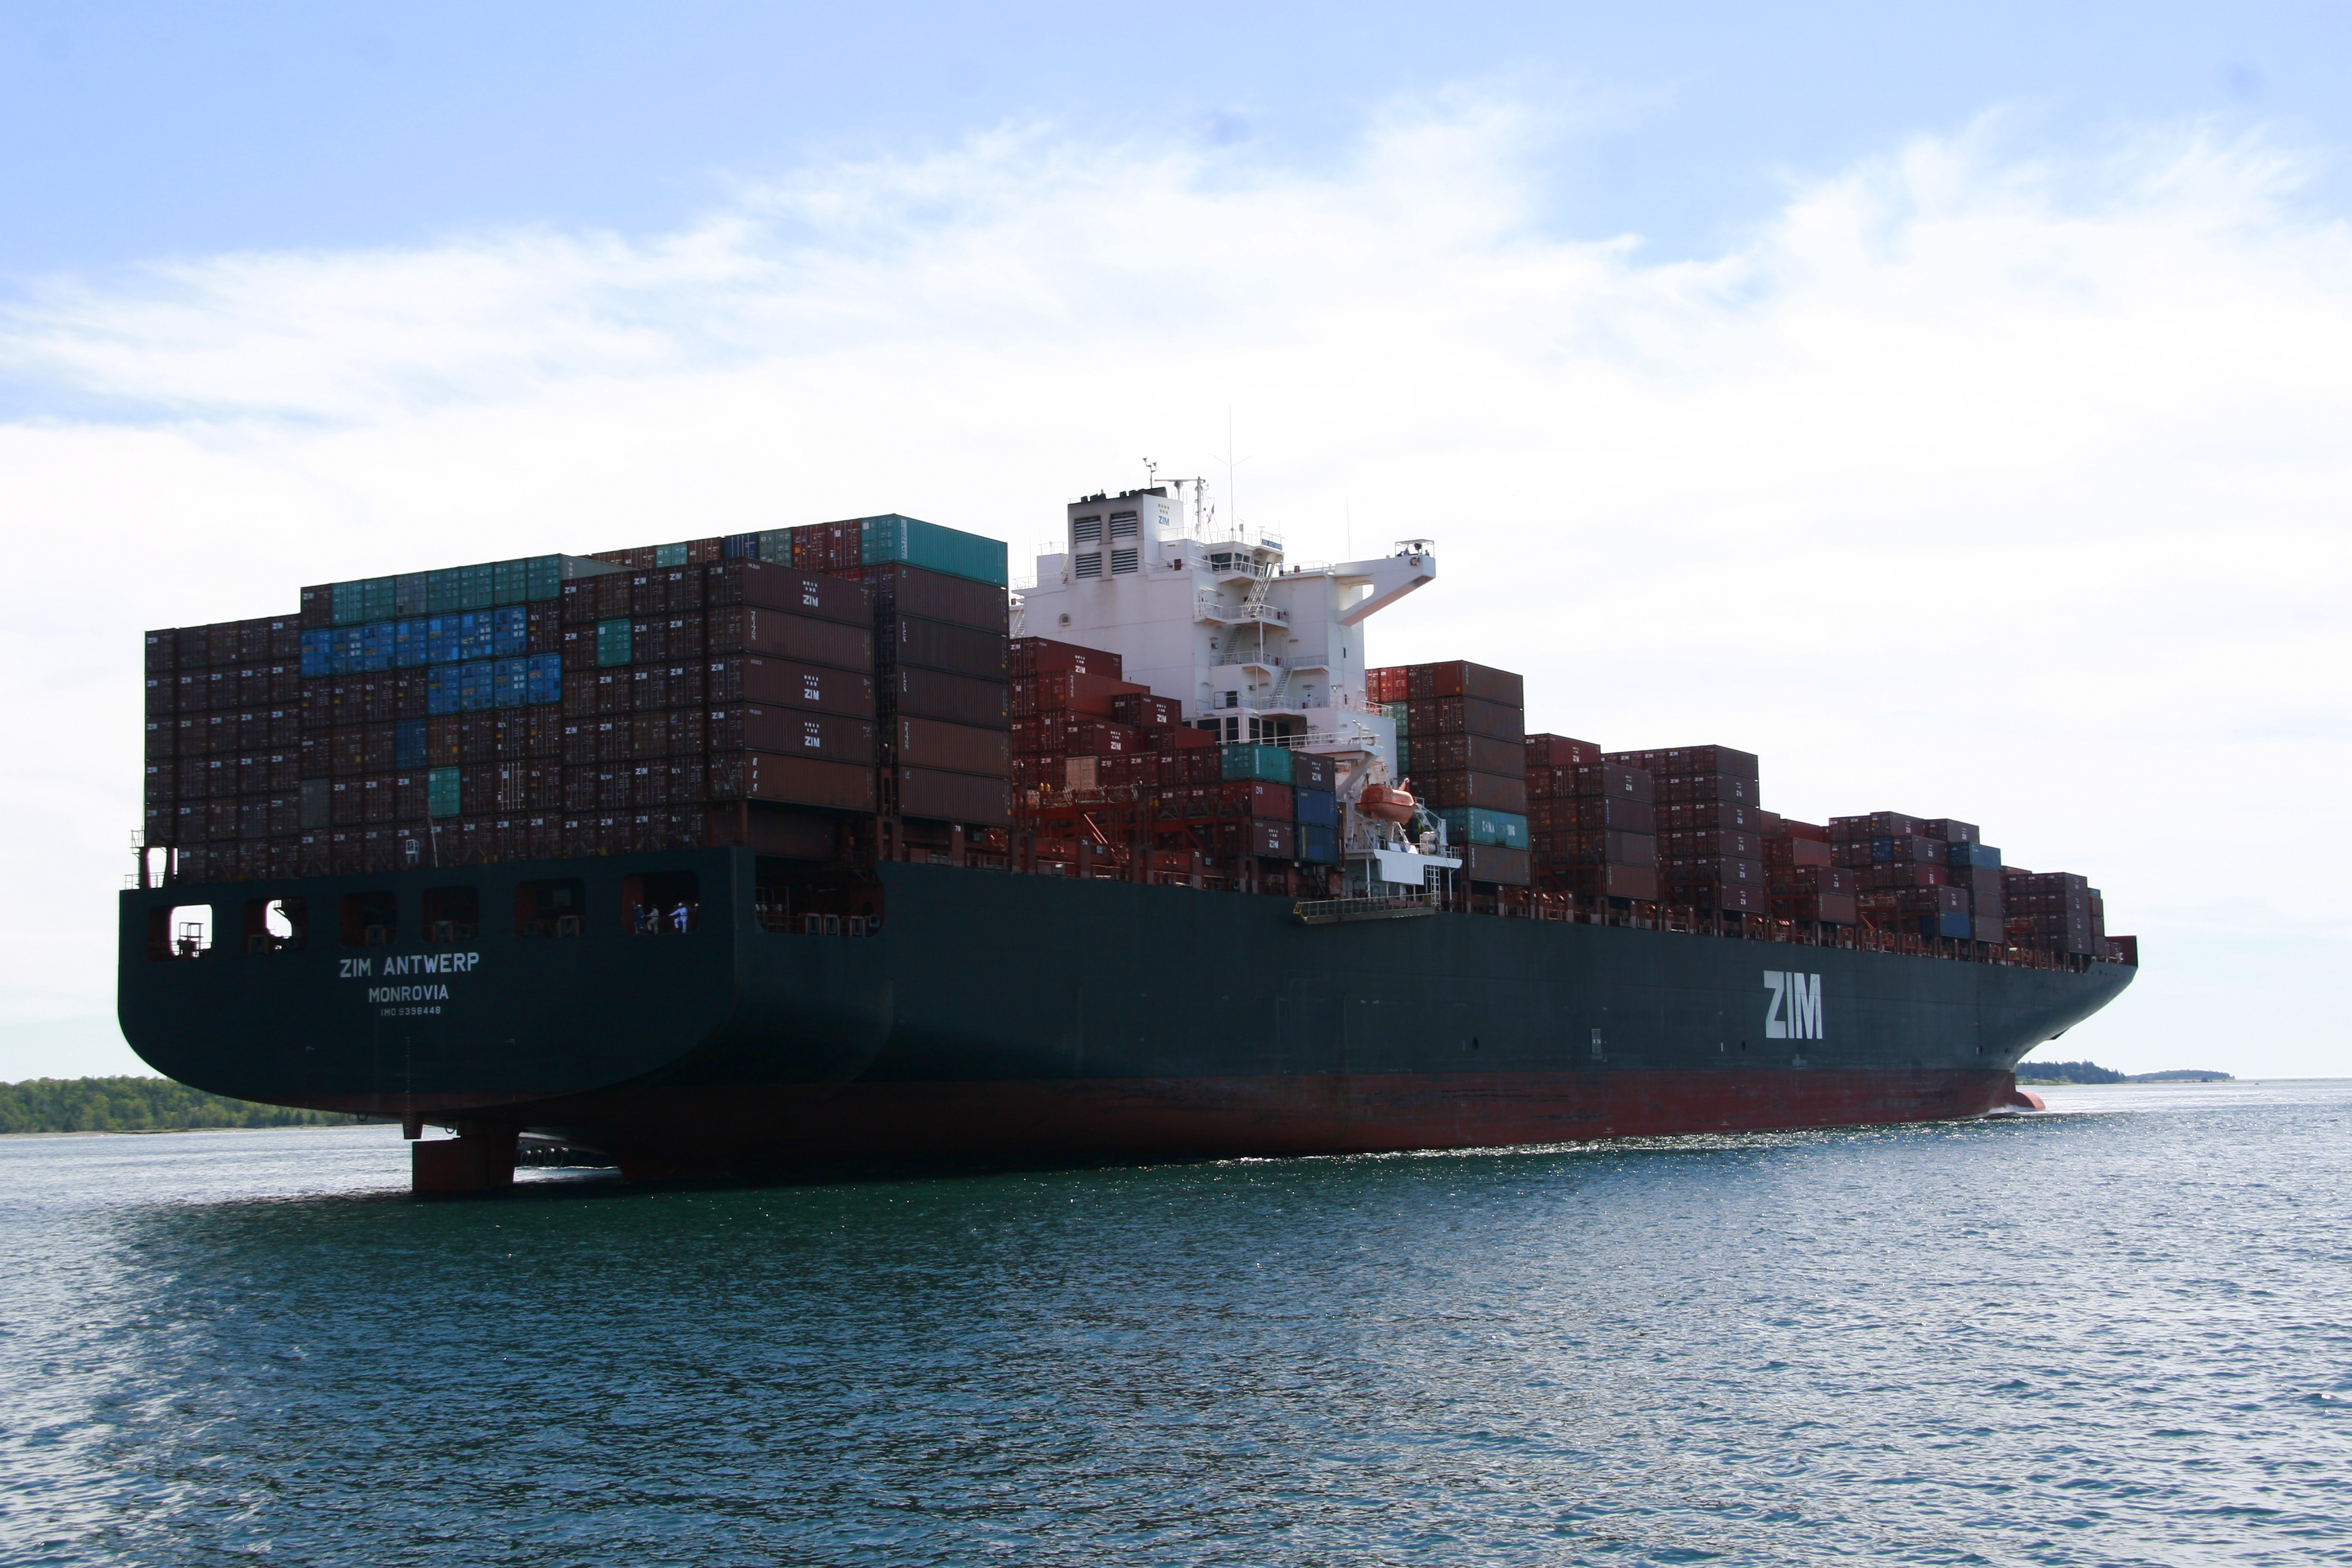 Biggest Container Ship Yet, And First 10,000+ TEU | Halifax Shipping